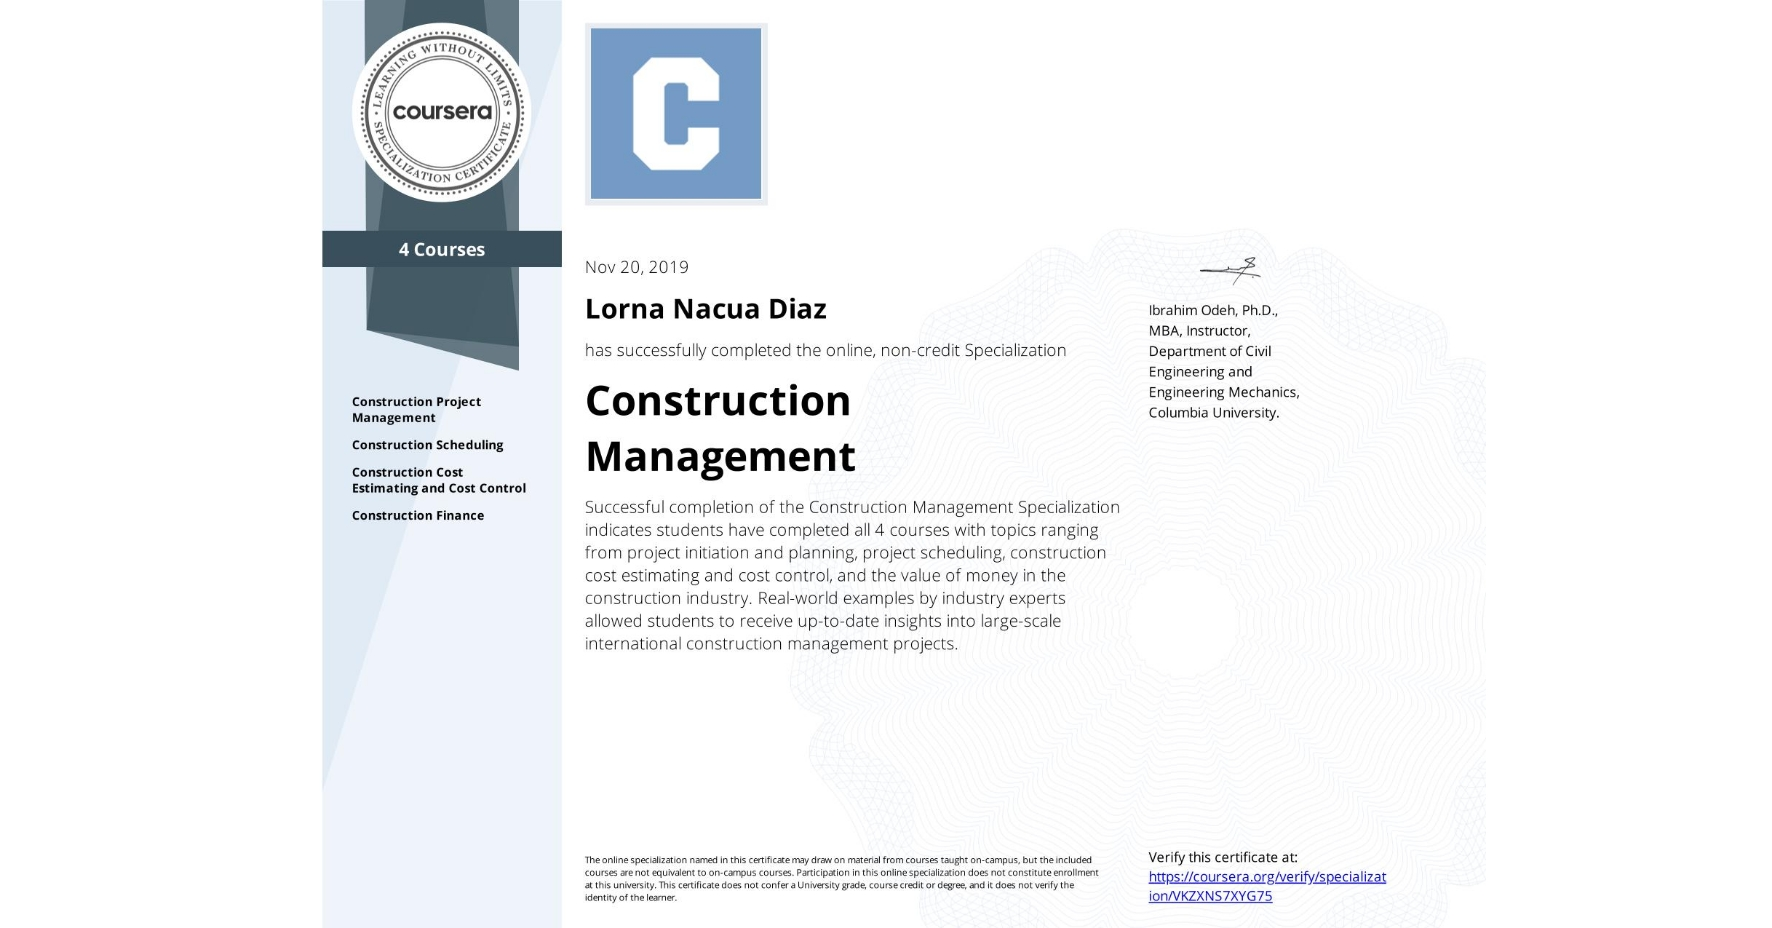 View certificate for Lorna Nacua Diaz, Construction Management, offered through Coursera. Successful completion of the Construction Management Specialization indicates students have completed all 4 courses with topics ranging from project initiation and planning, project scheduling, construction cost estimating and cost control, and the value of money in the construction industry.  Real-world examples by industry experts allowed students to receive up-to-date insights into large-scale international construction management projects.